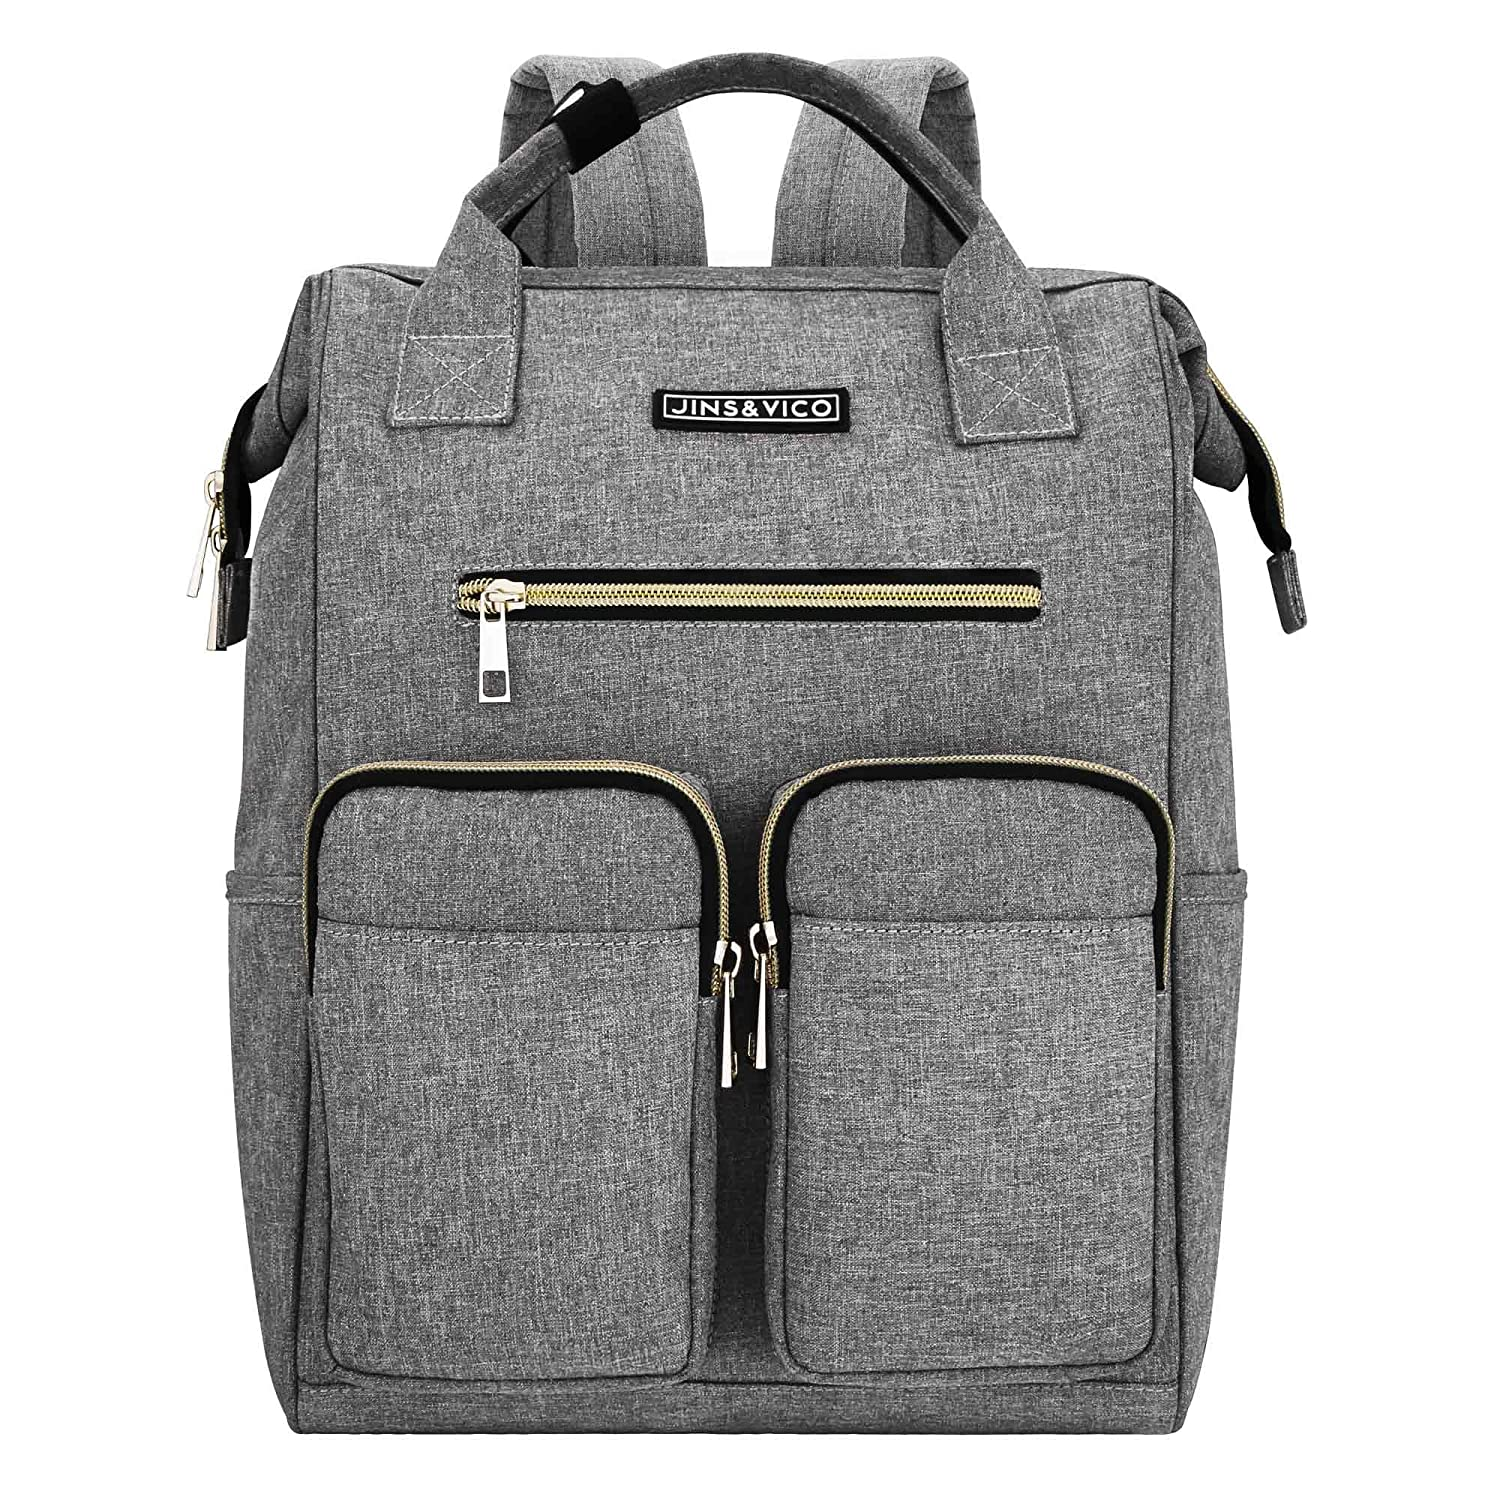 Amazon.com: Laptop Backpack for Women, Lightweight